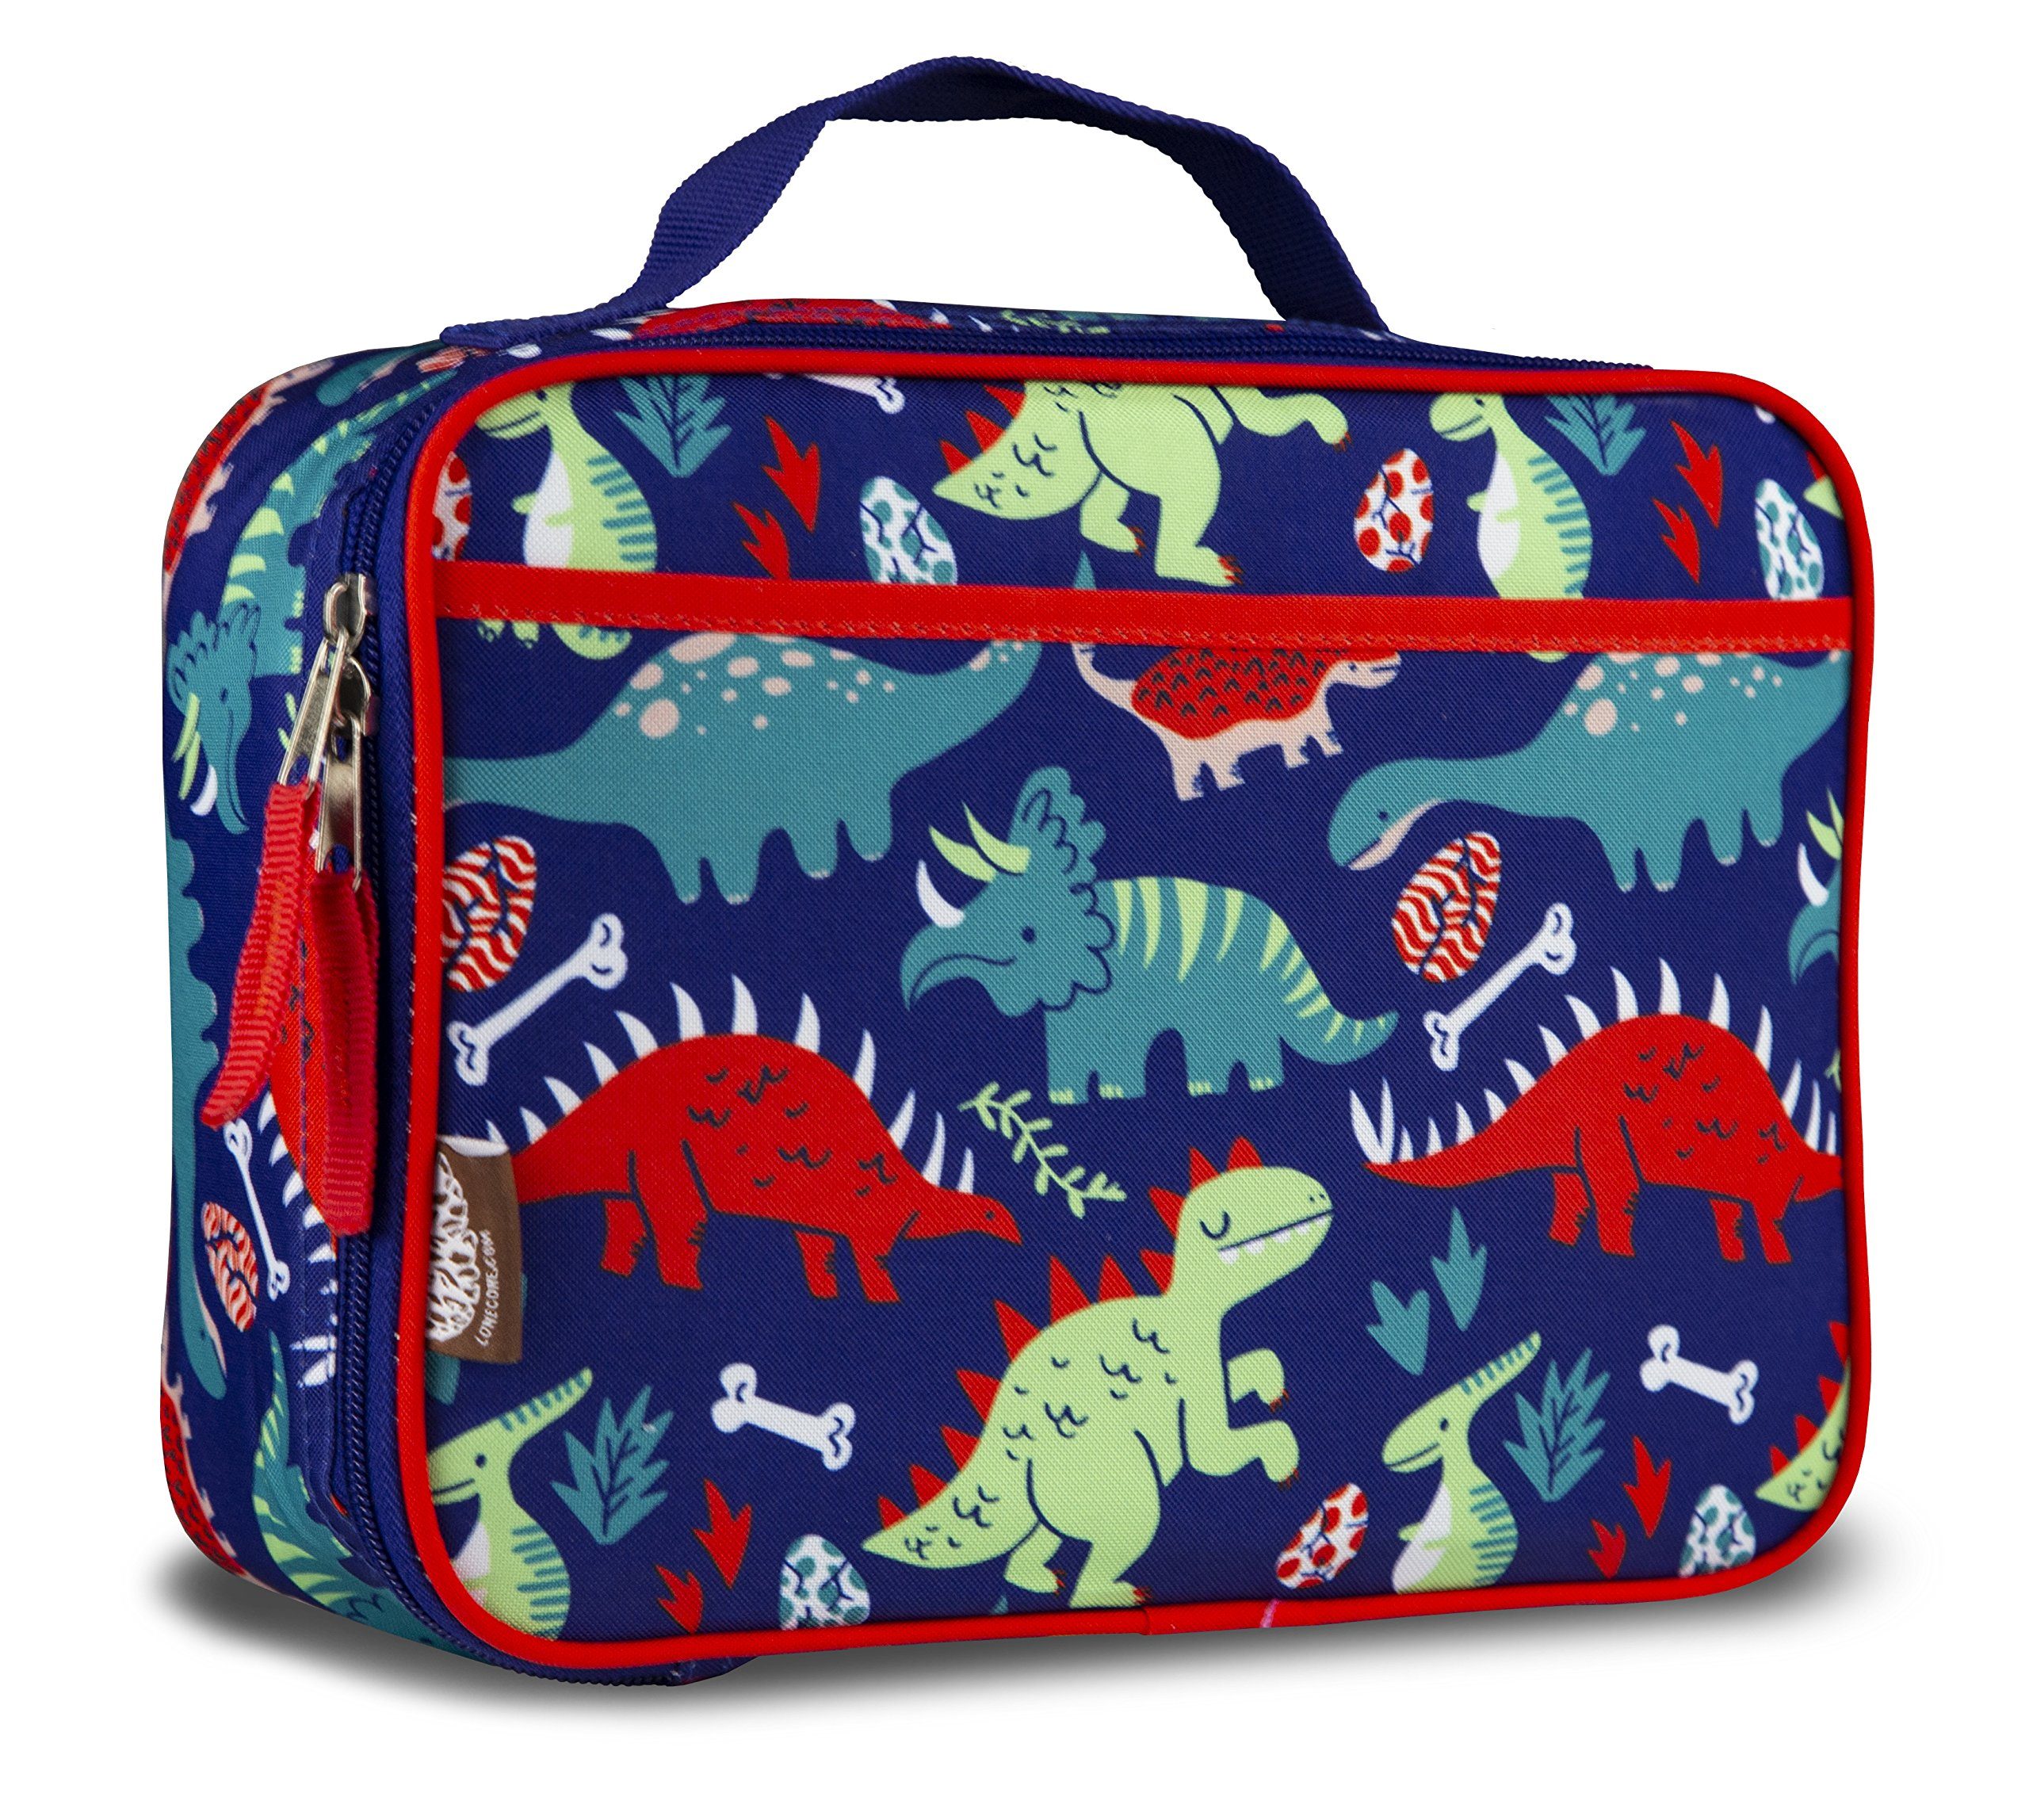 LONECONE Kids' Insulated Fabric Lunchbox - Cute Patterns for Boys and Girls, Snack-O-Saurus